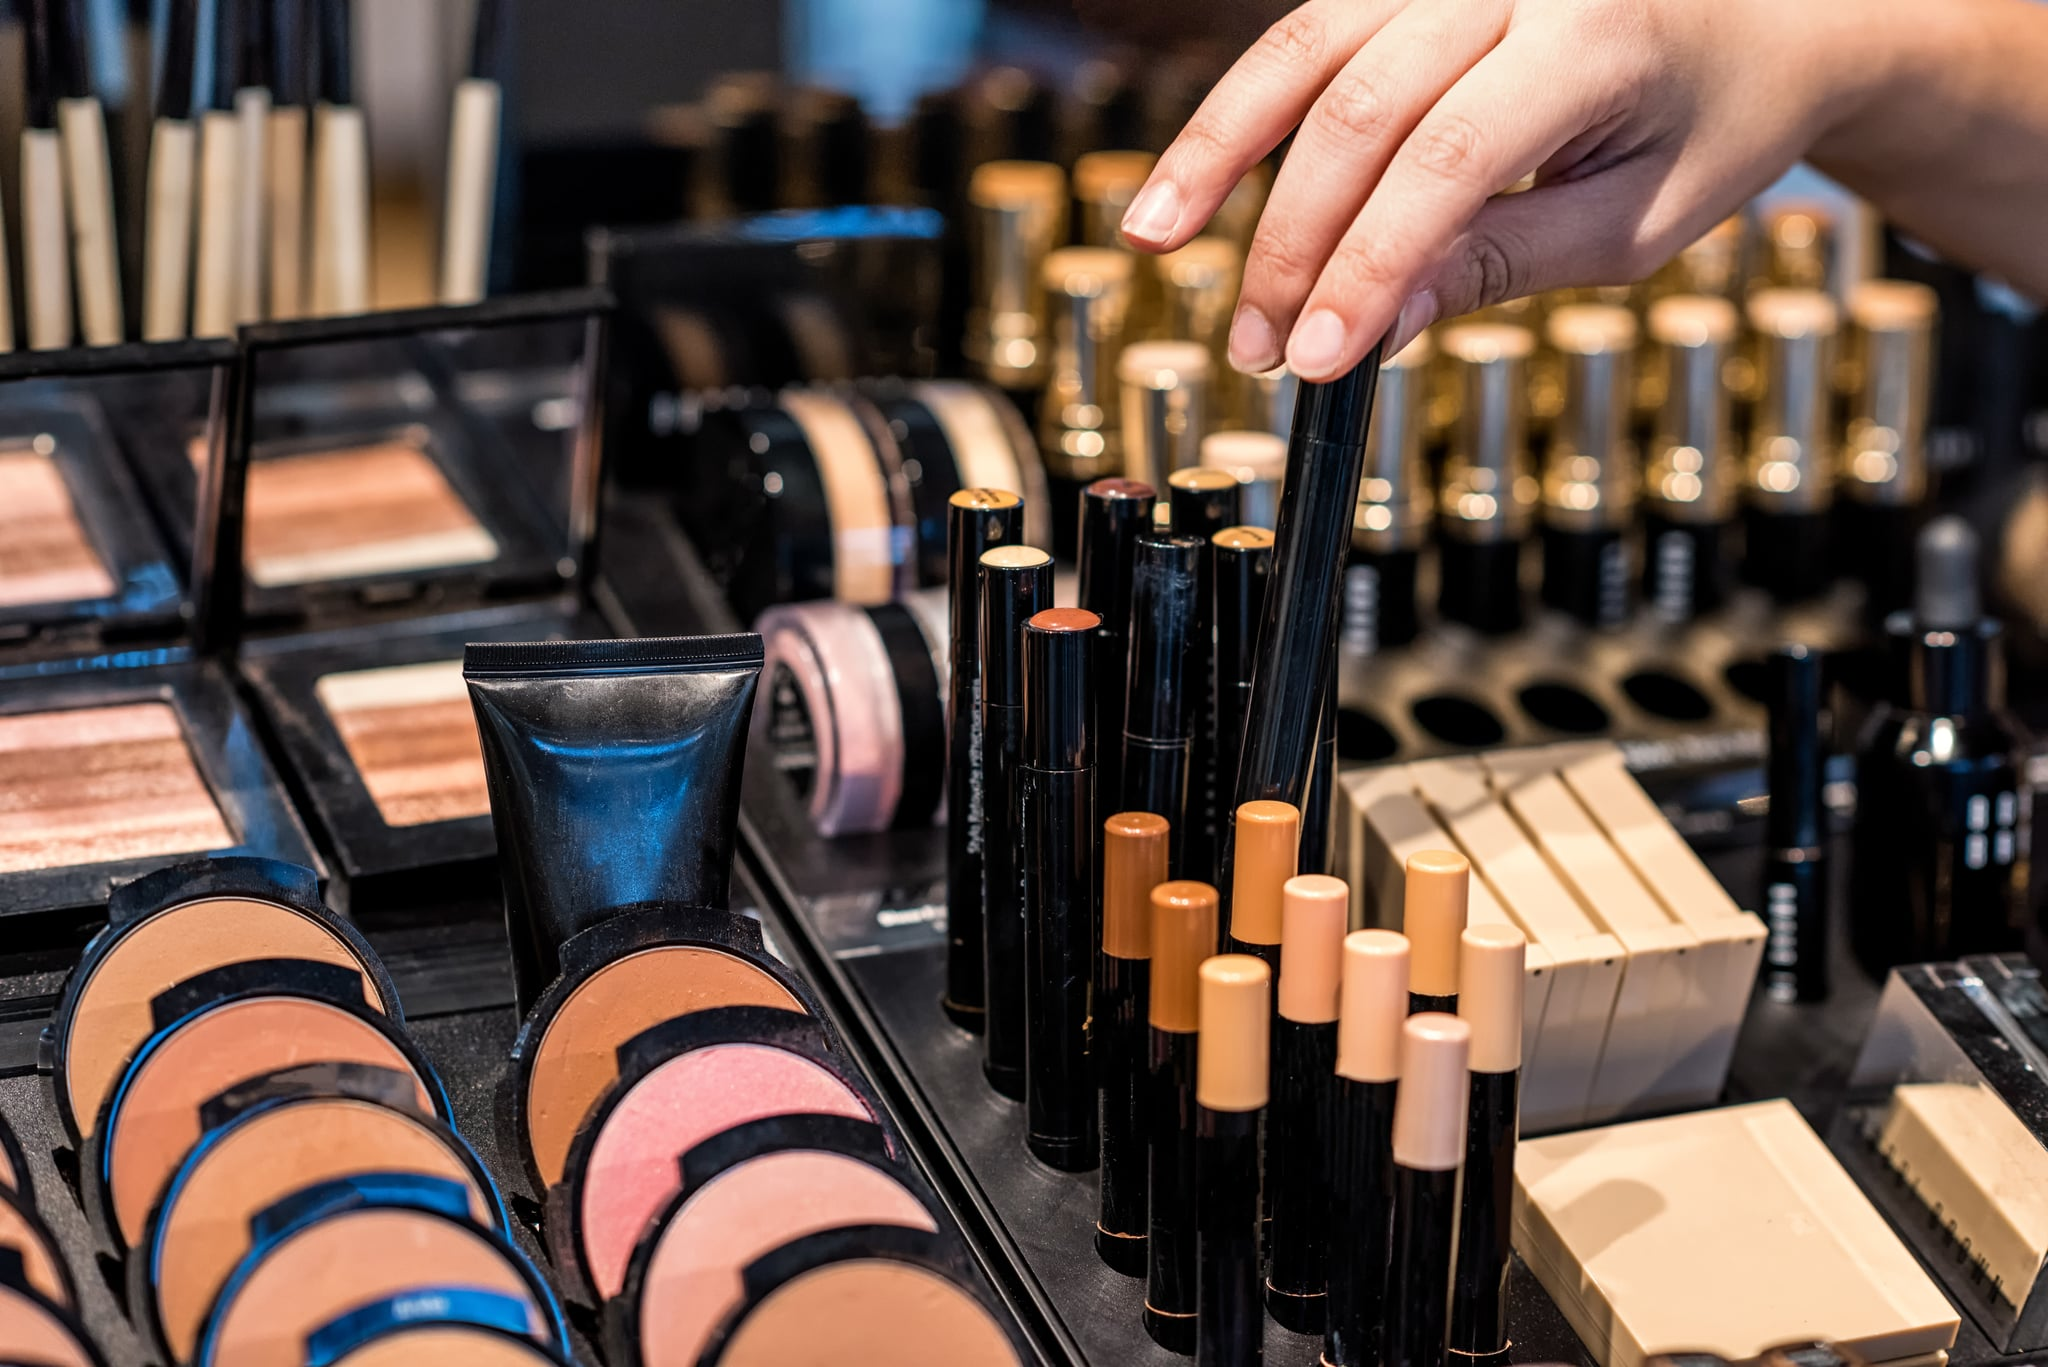 A woman's hand with bracelets chooses from various shades of make-up at a high-end makeup counter.